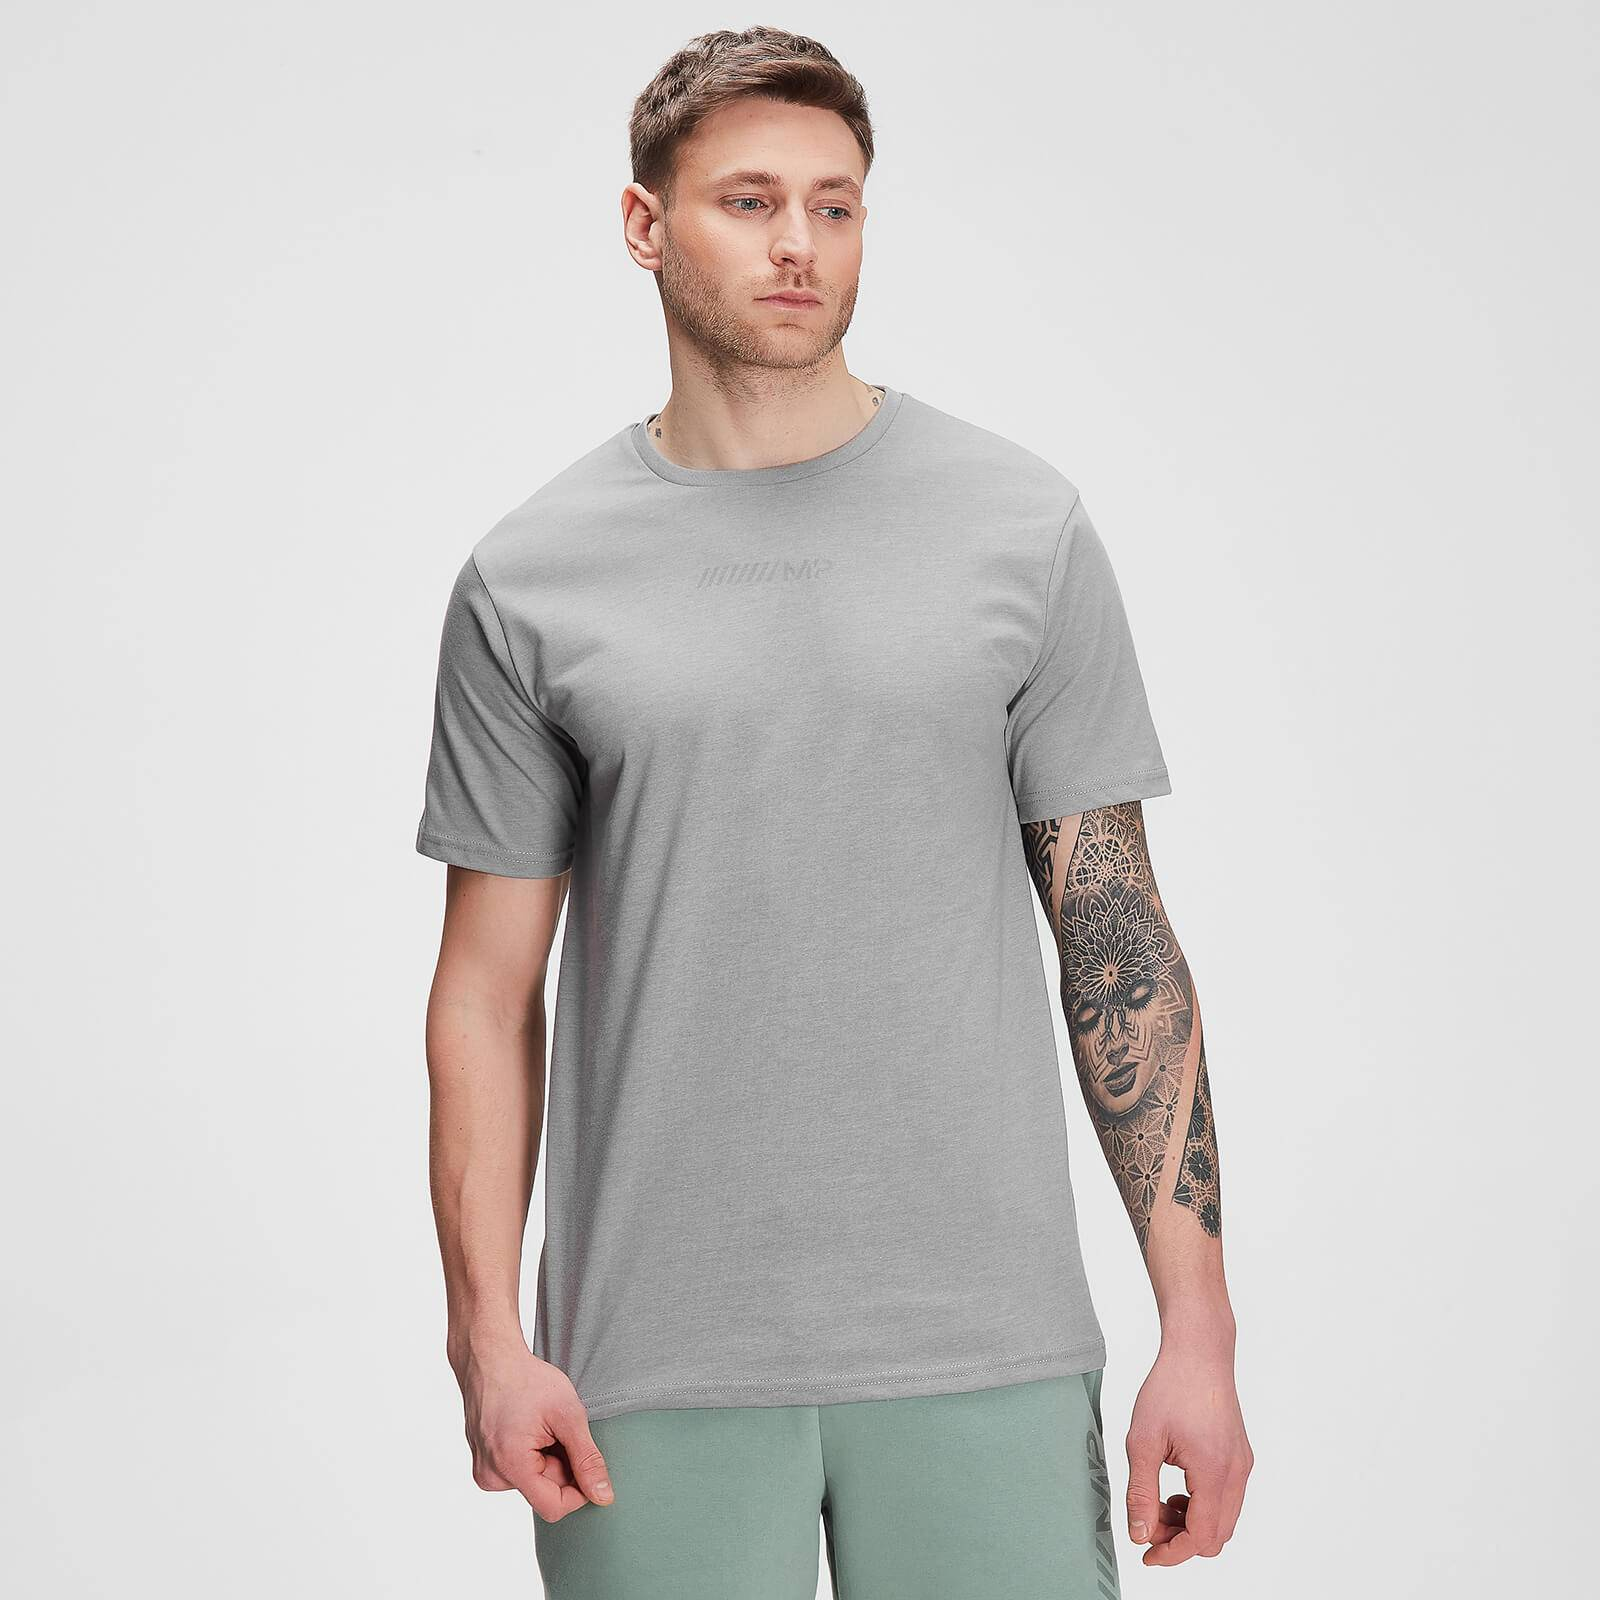 Mp Men's Tonal Graphic Short Sleeve T-shirt – Storm Grey Marl - XL